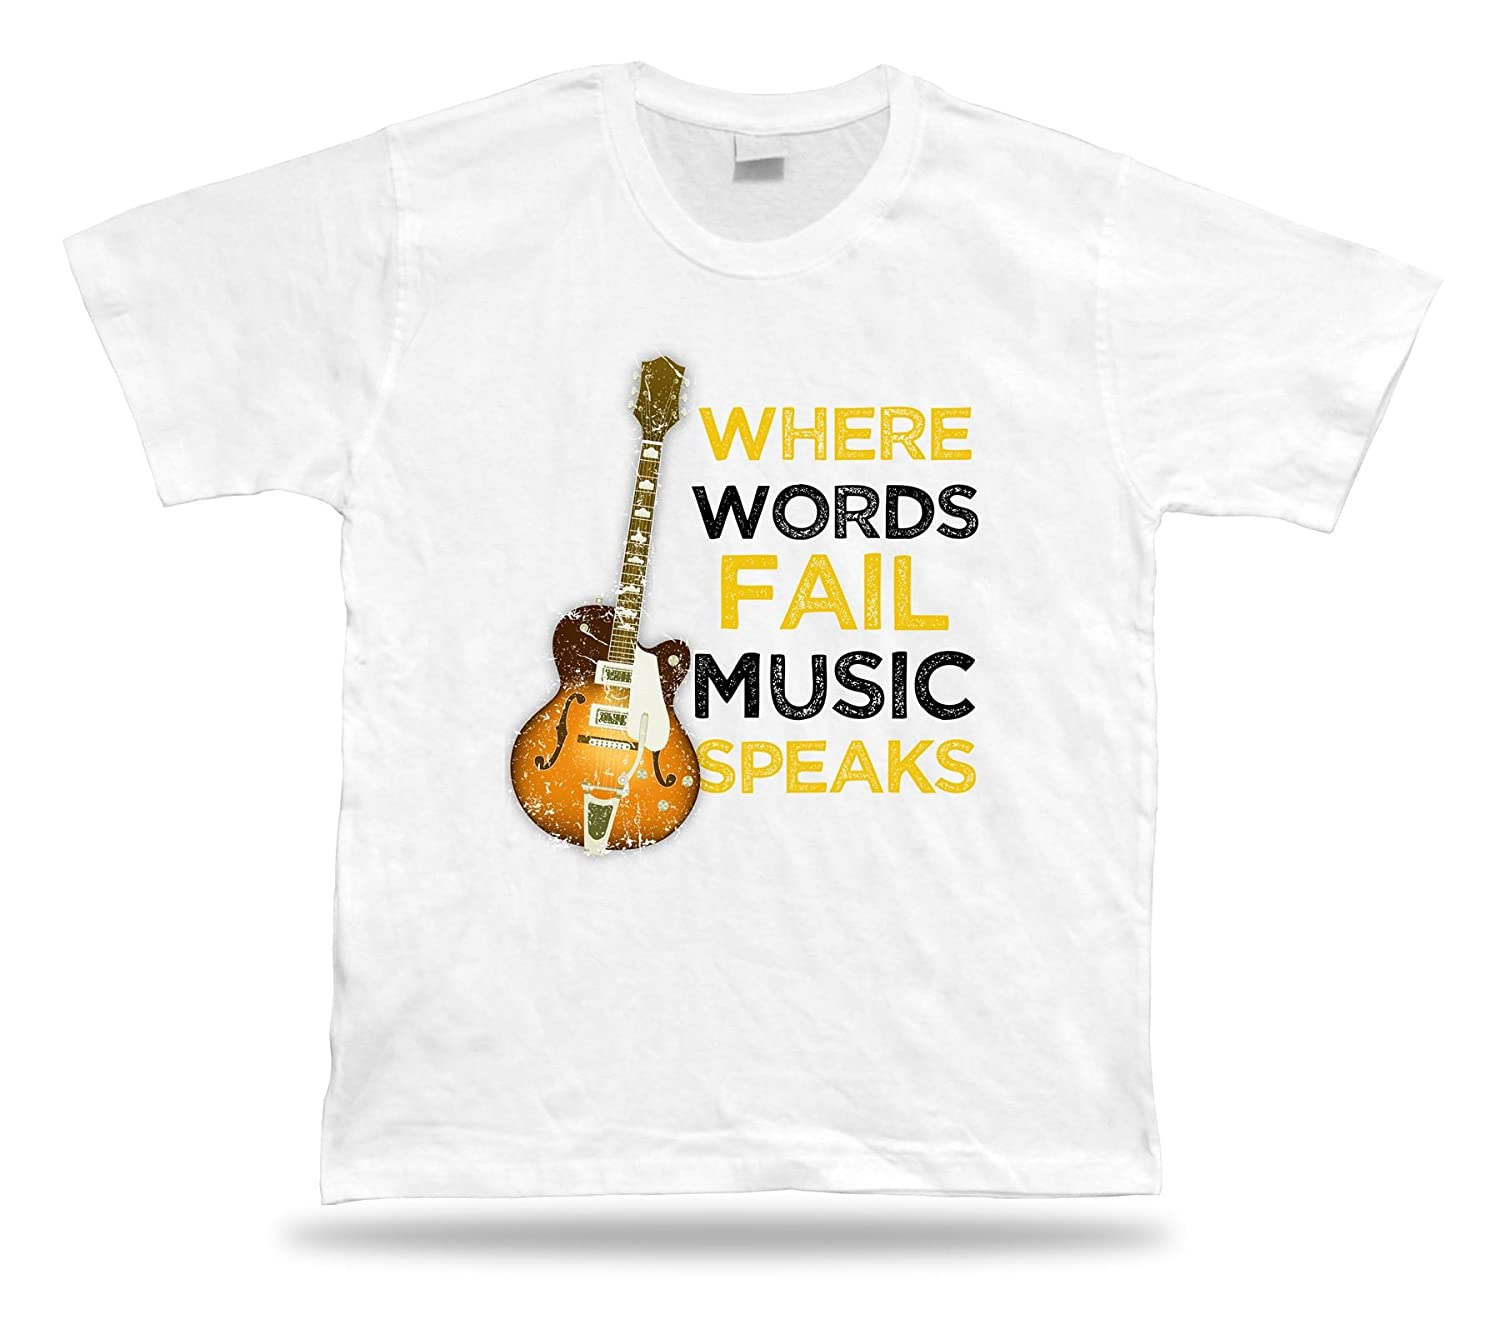 Where words Fail music speaks classic unisex apparel tee T shirt spiritual quote